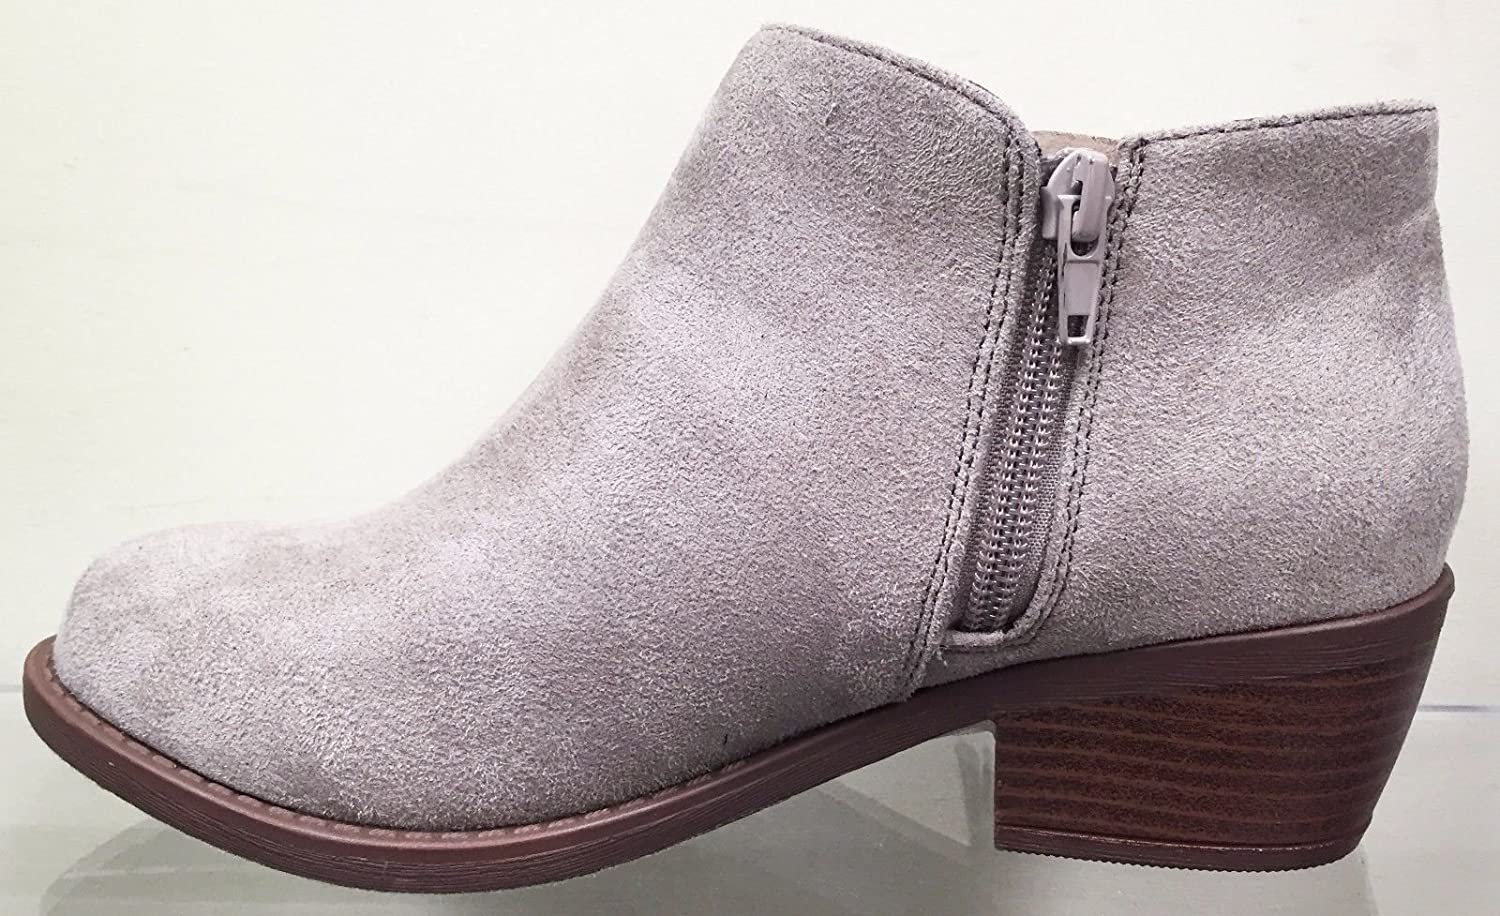 Soda Doctor Fringe Faux Suede Moccasin Pointy Toe Stacked Heel Ankle Bootie Shoe Taupe